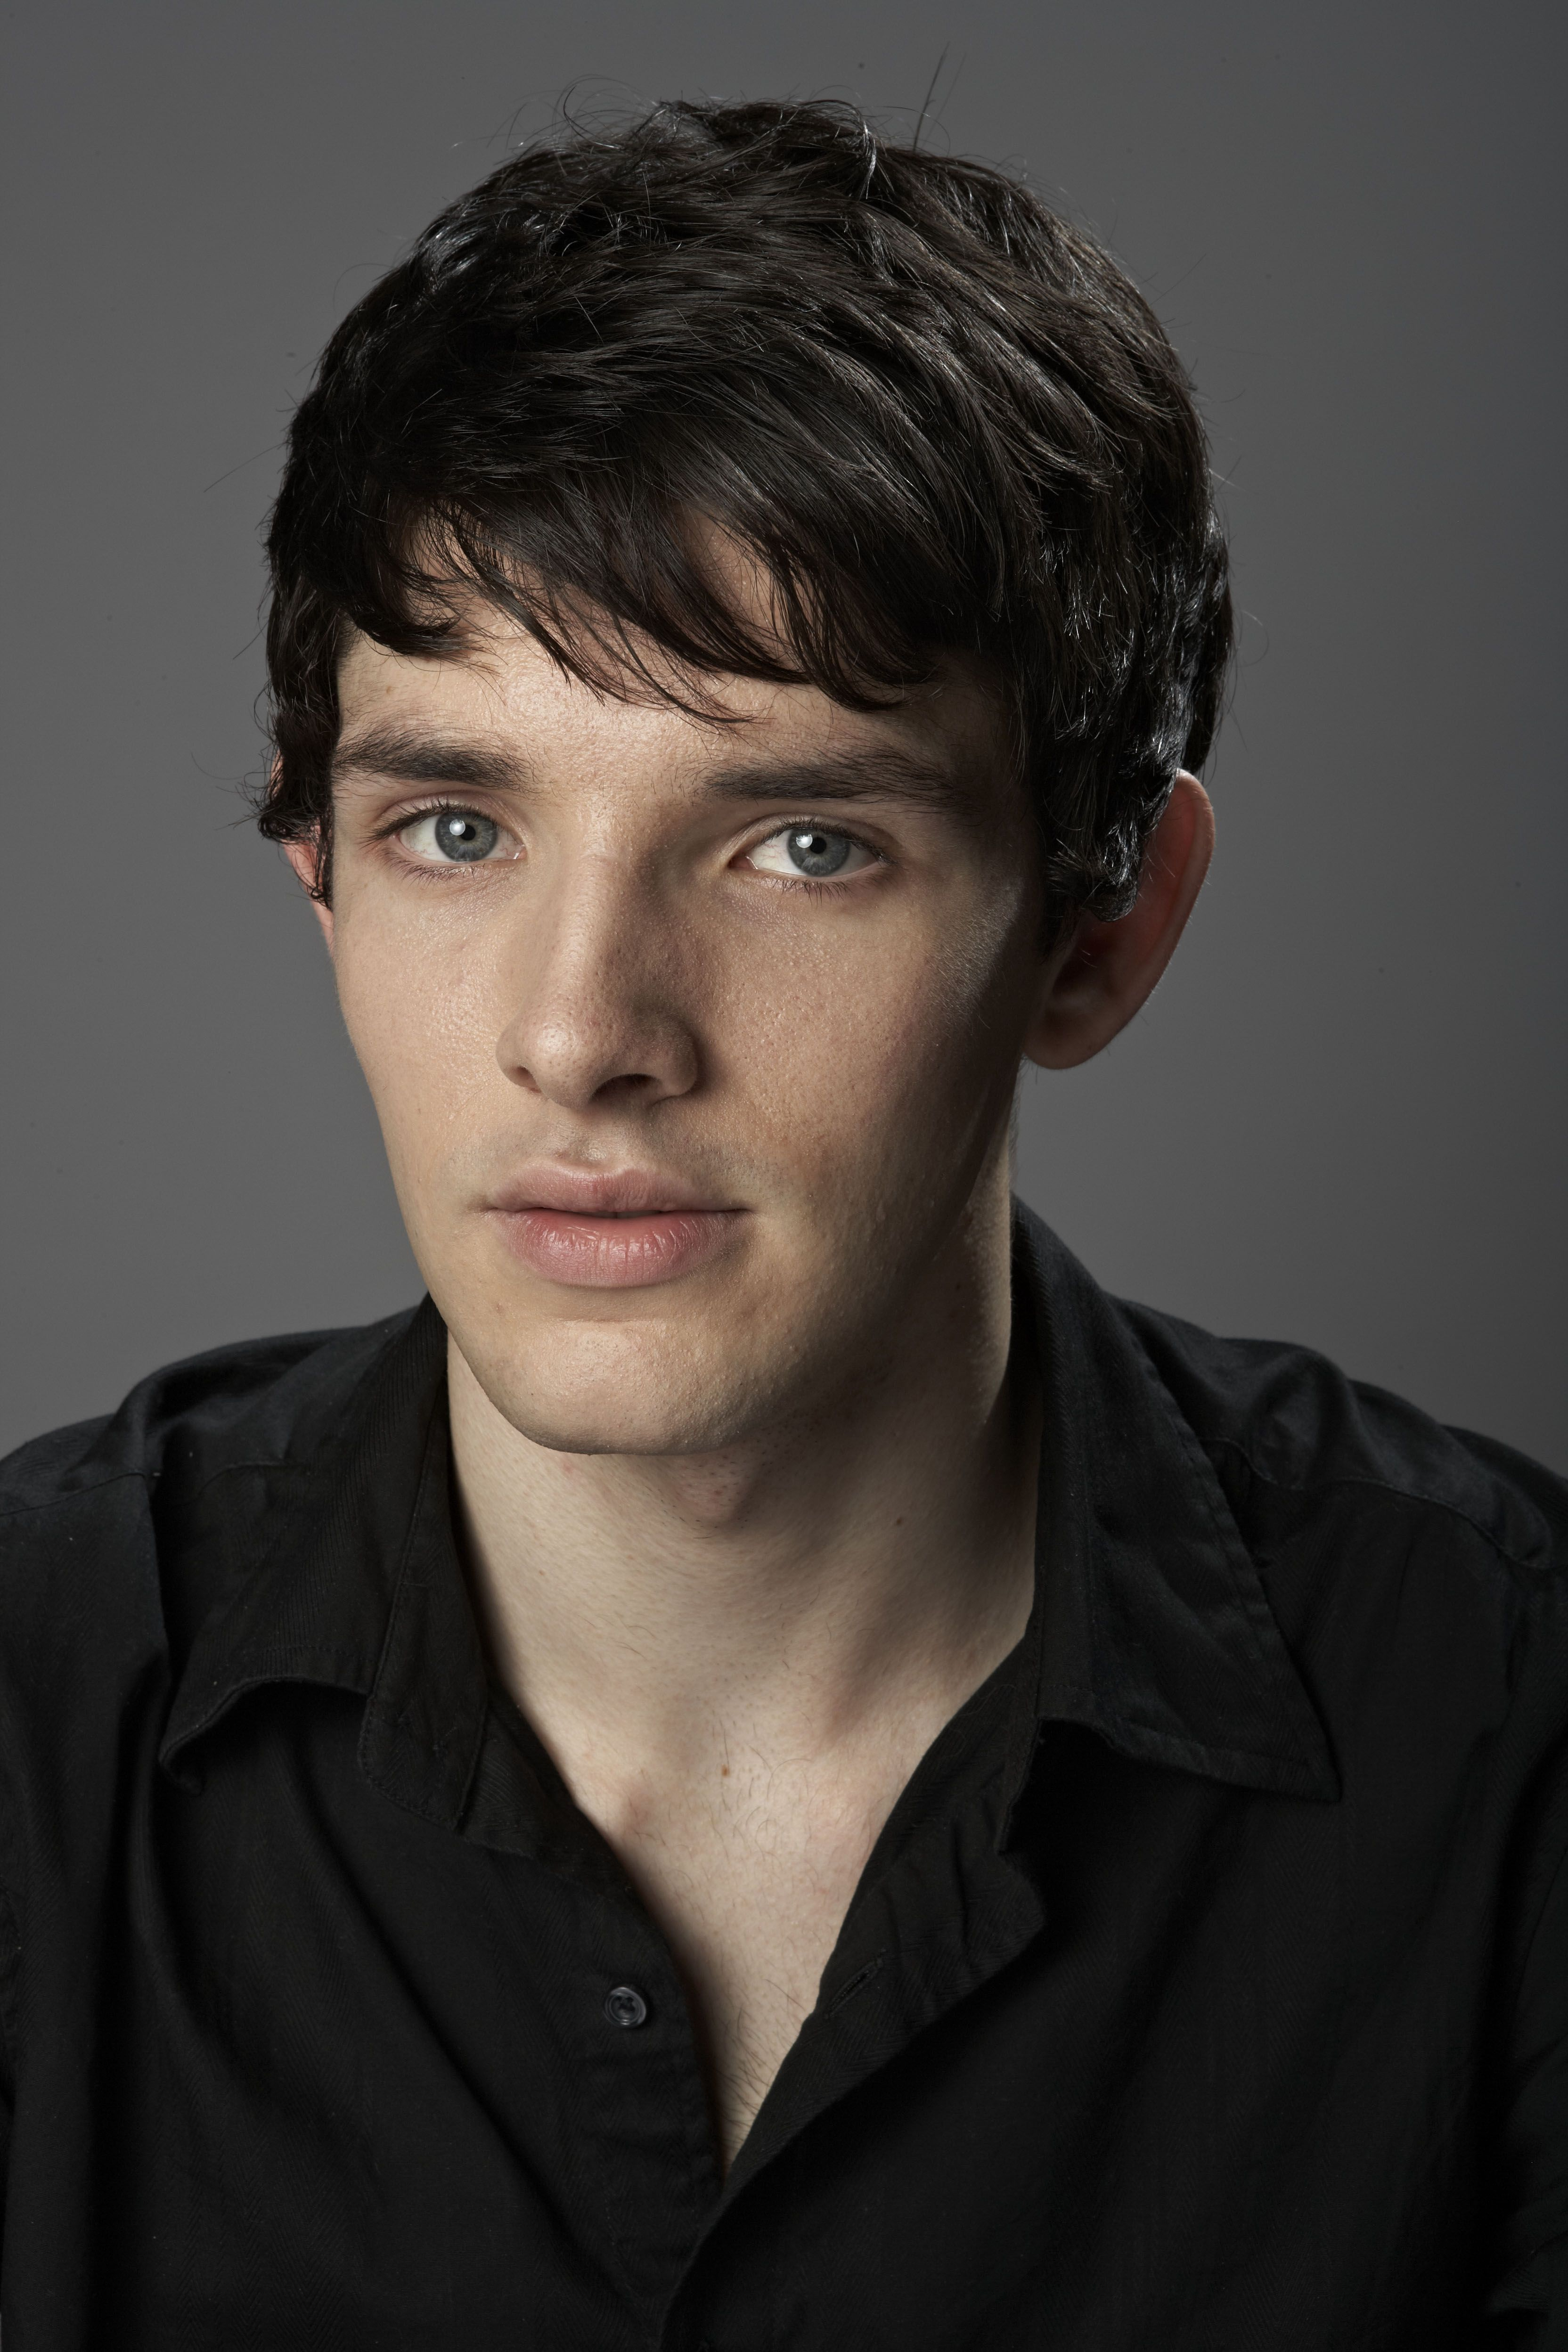 bra Colin Morgan (born 1986) naked photo 2017